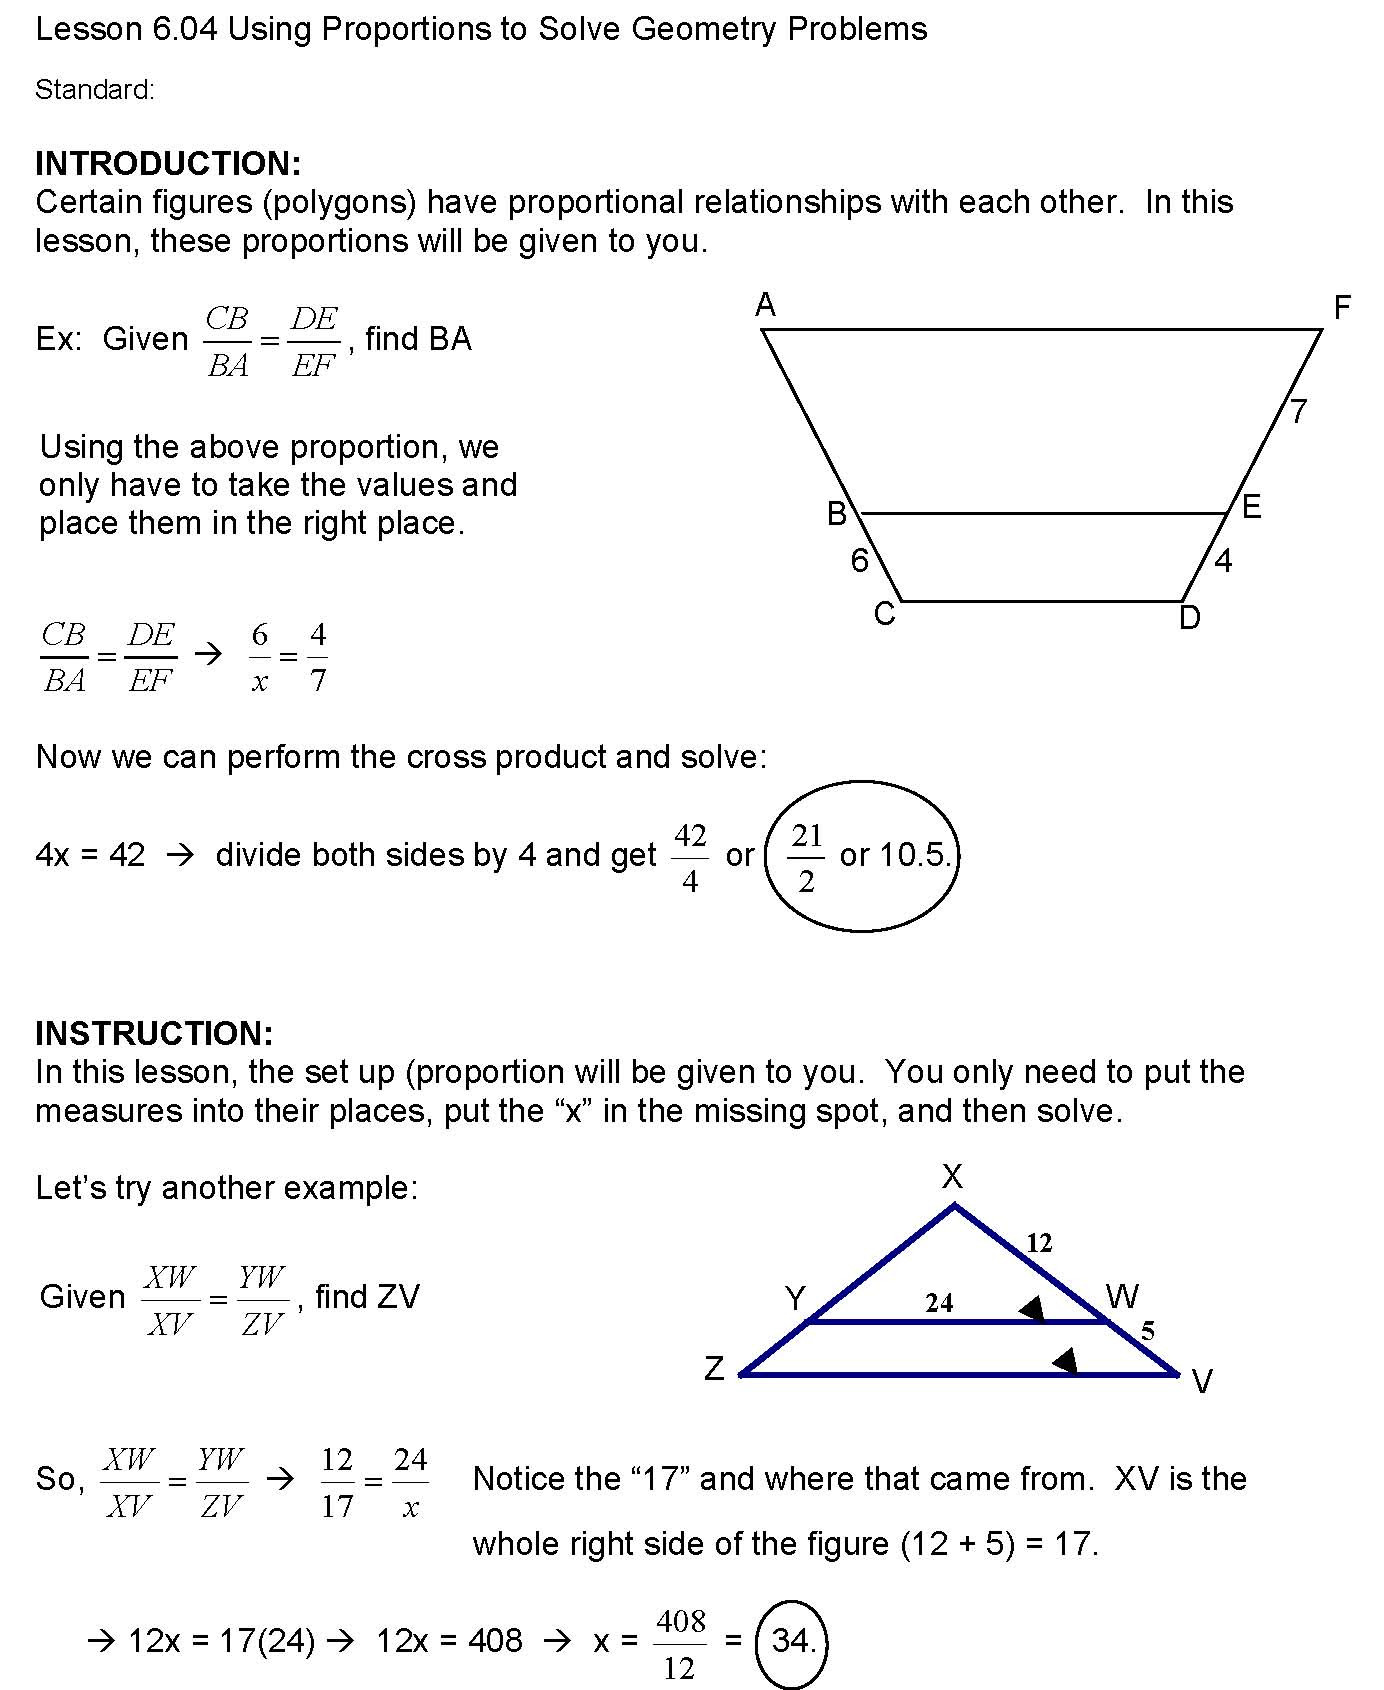 Solving Proportions Worksheet Answers Cosgeometry Lesson 6 04 Using Proportions to solve